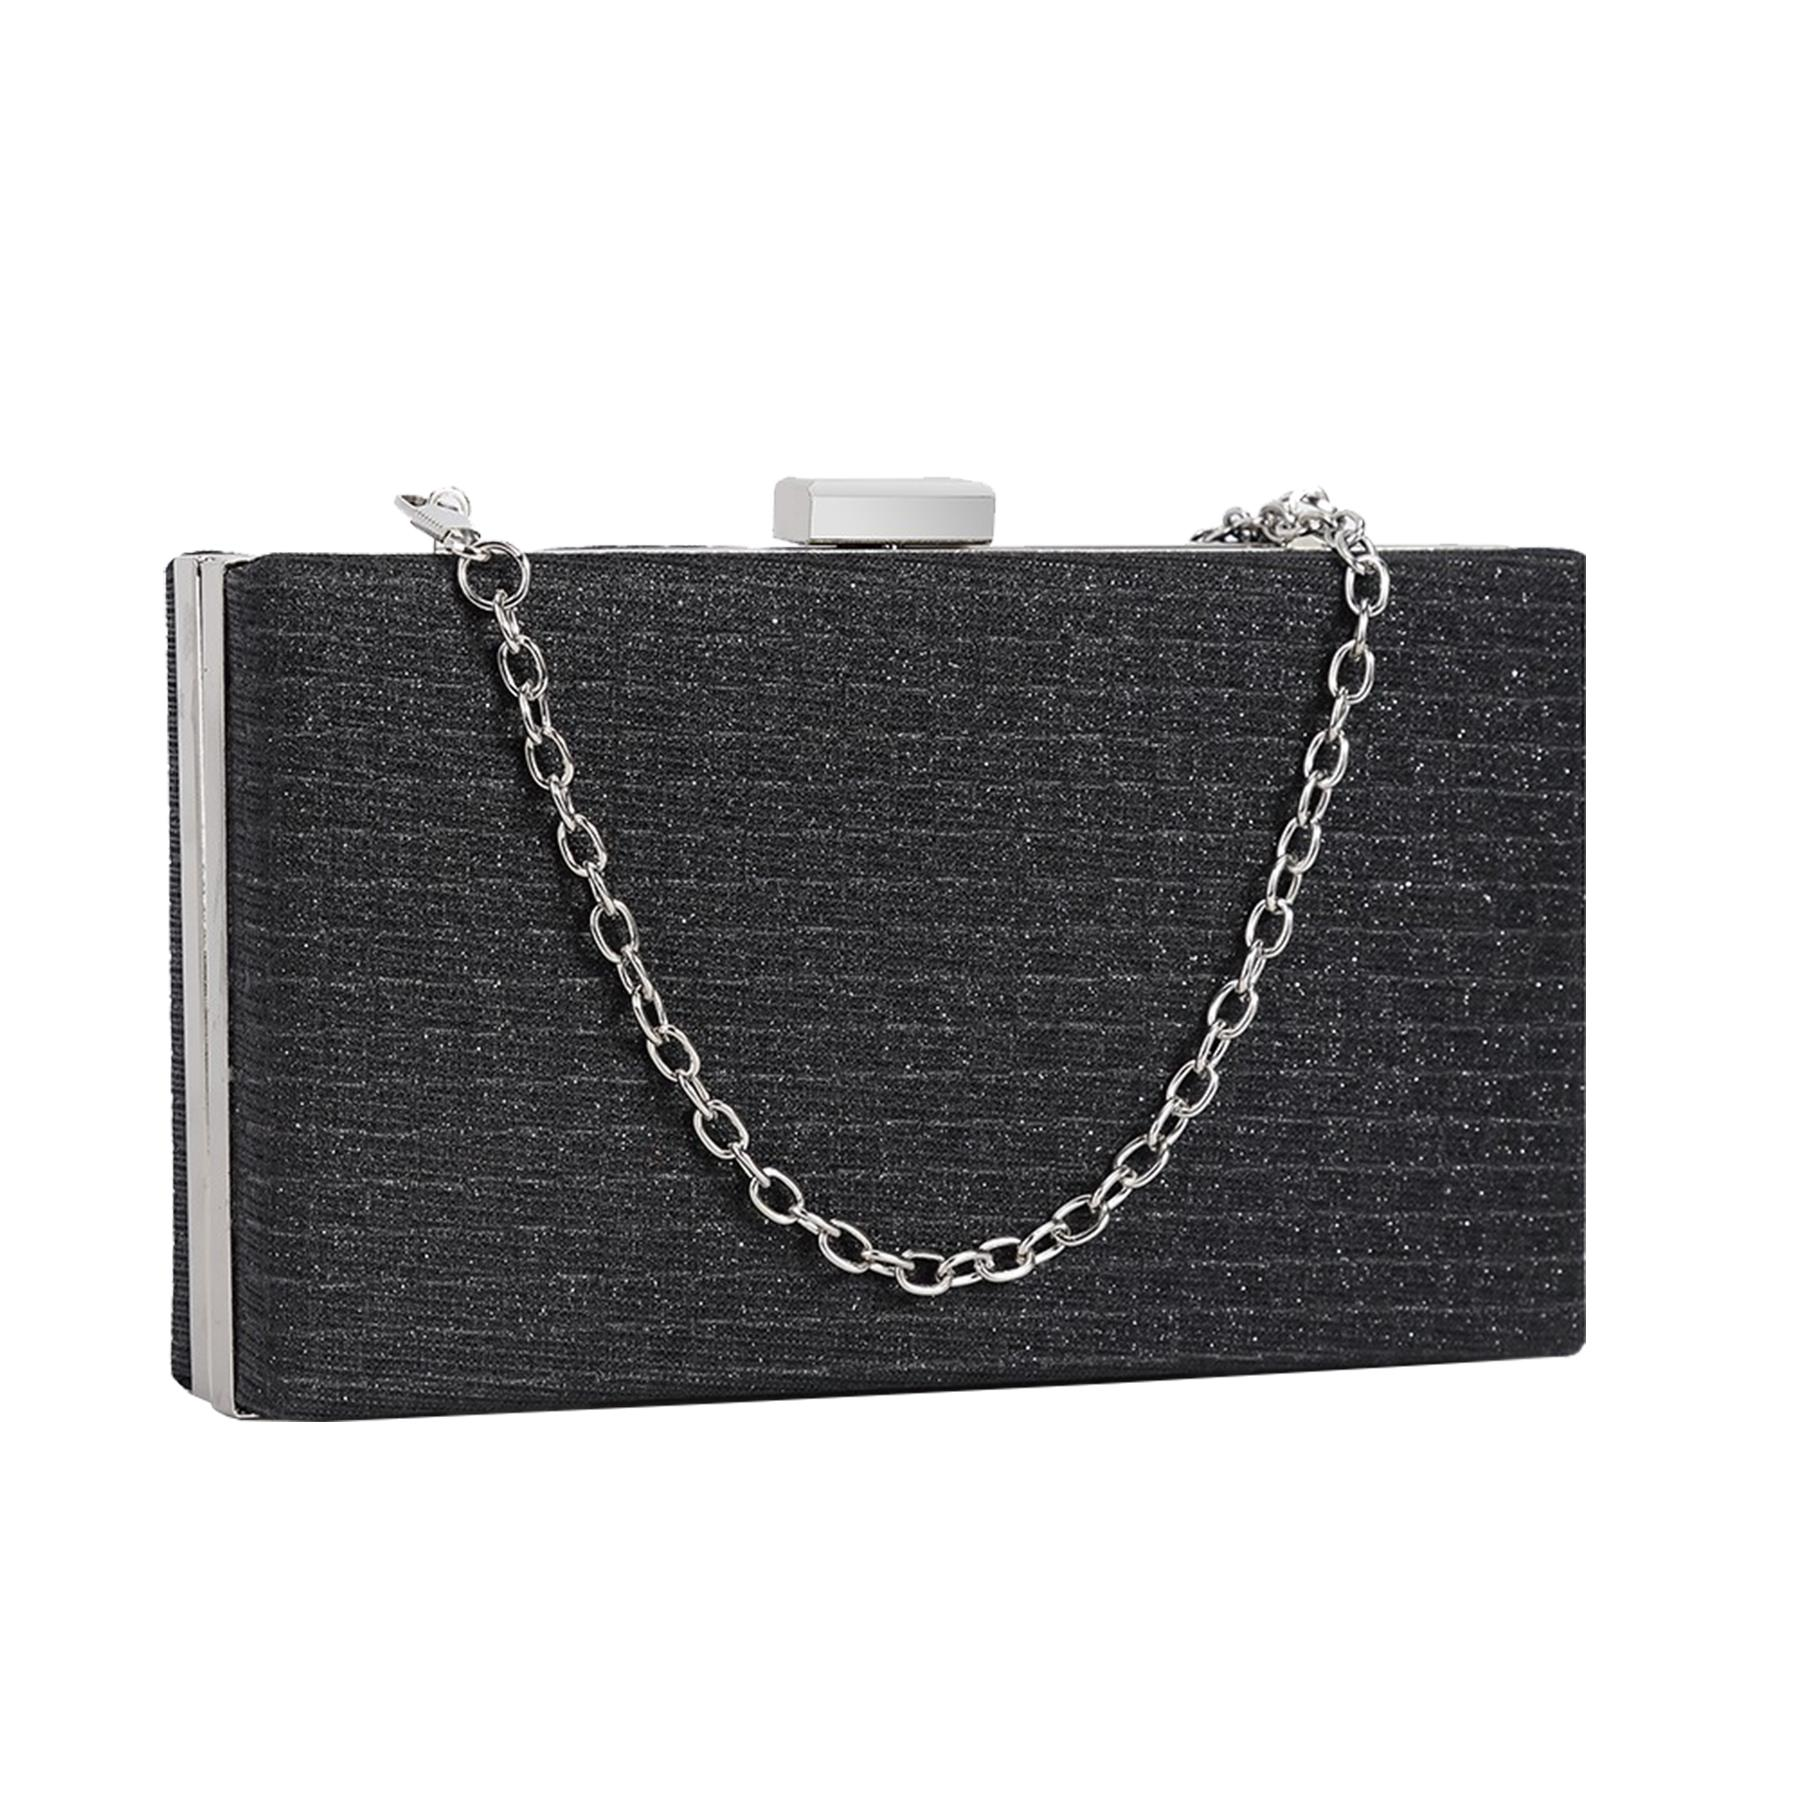 New-Sparkly-Shimmer-Glitter-Chain-Ladies-Hard-Compact-Bridal-Clutch-Bag-Purse thumbnail 3